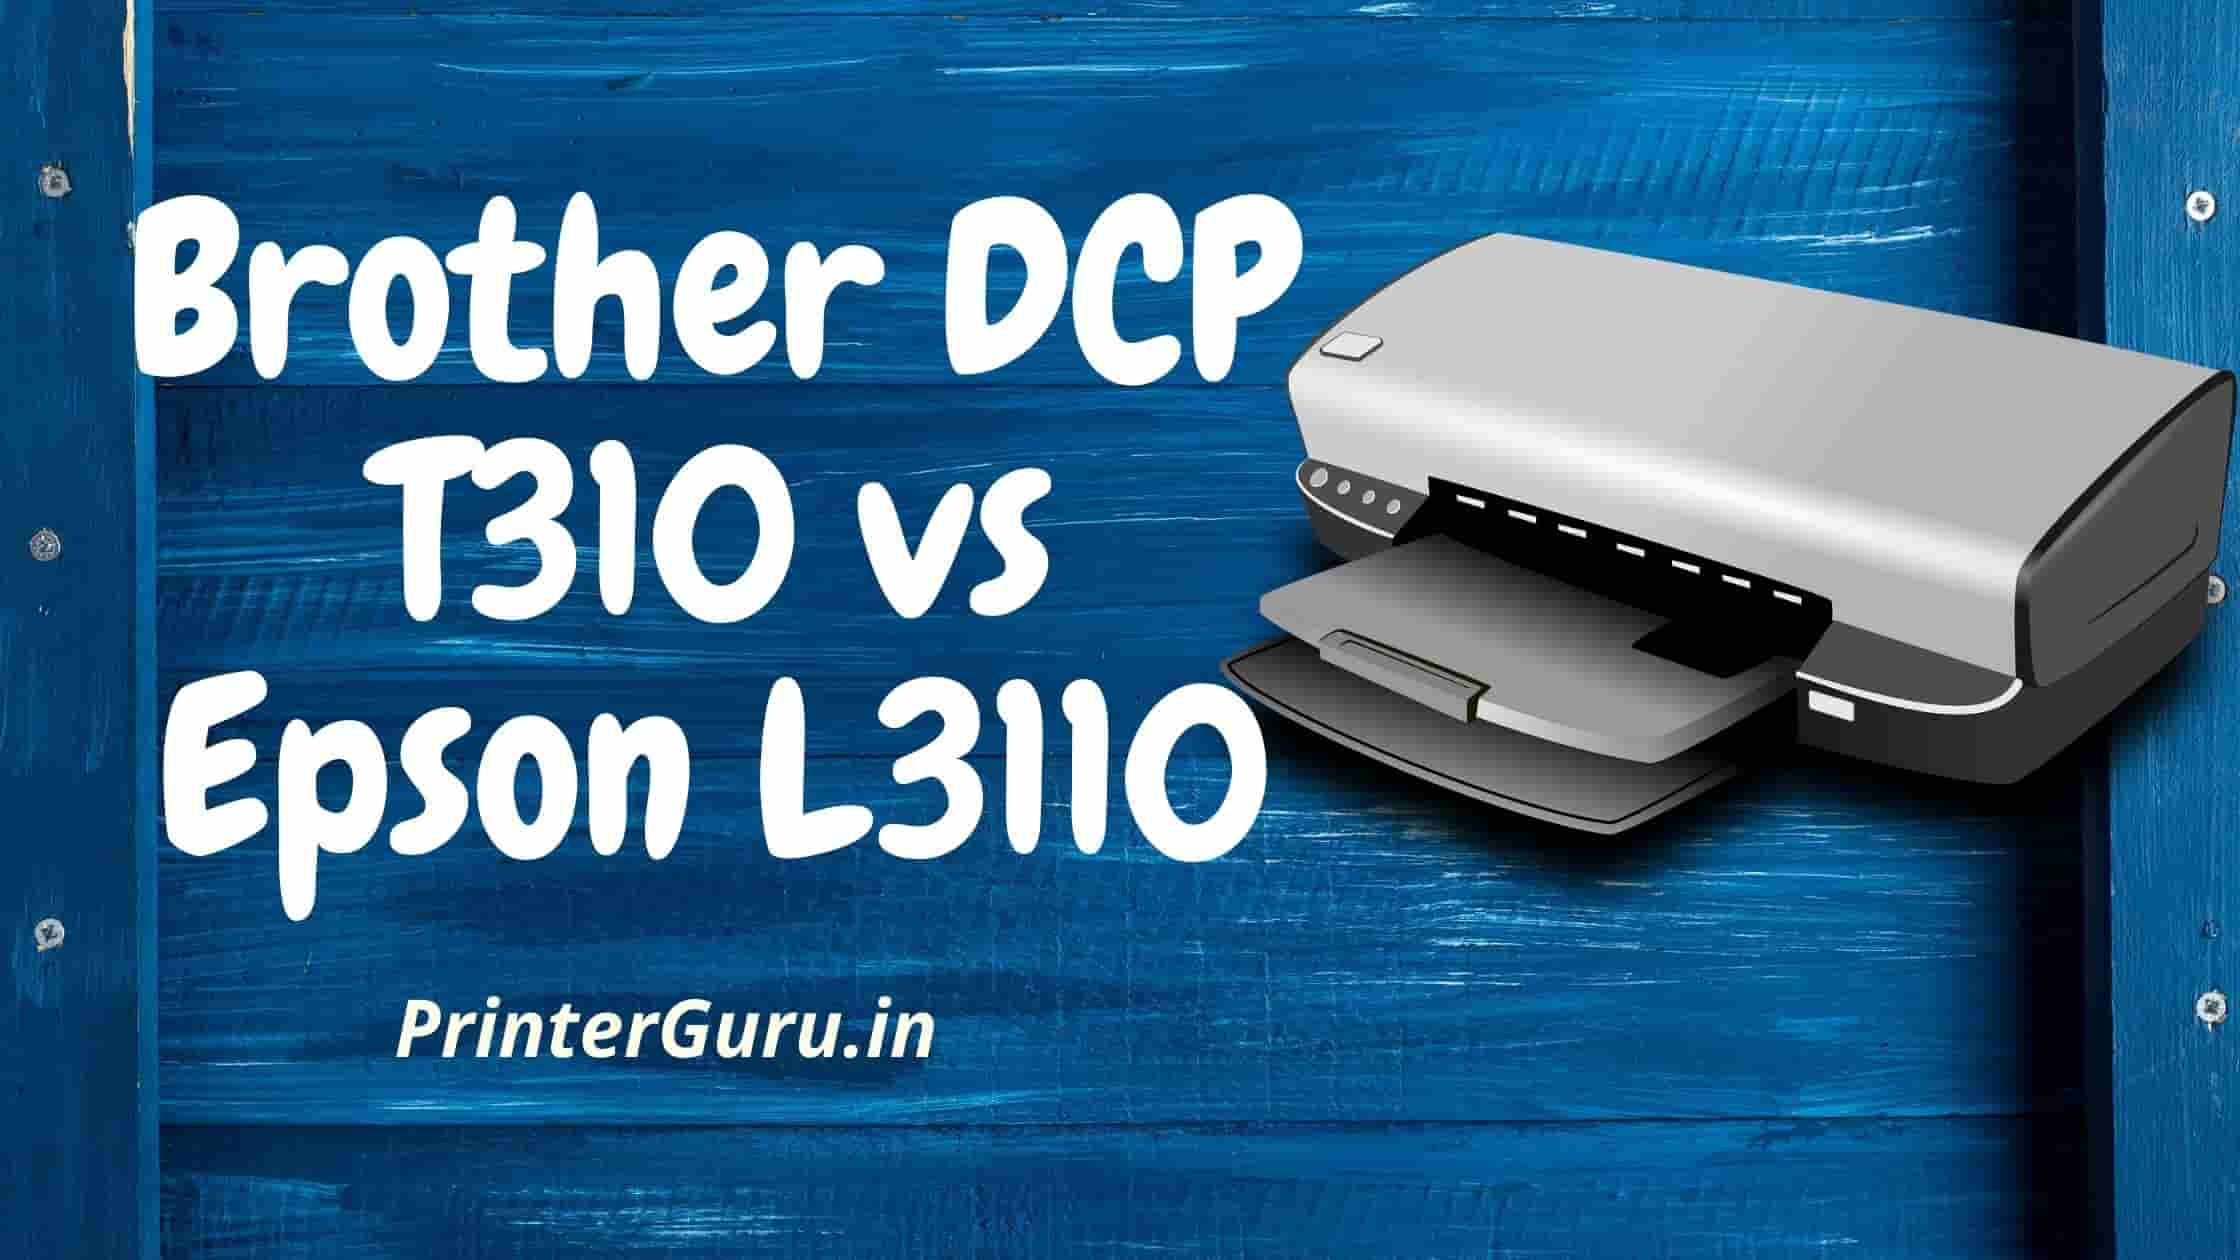 Brother DCP T310 vs Epson L3110